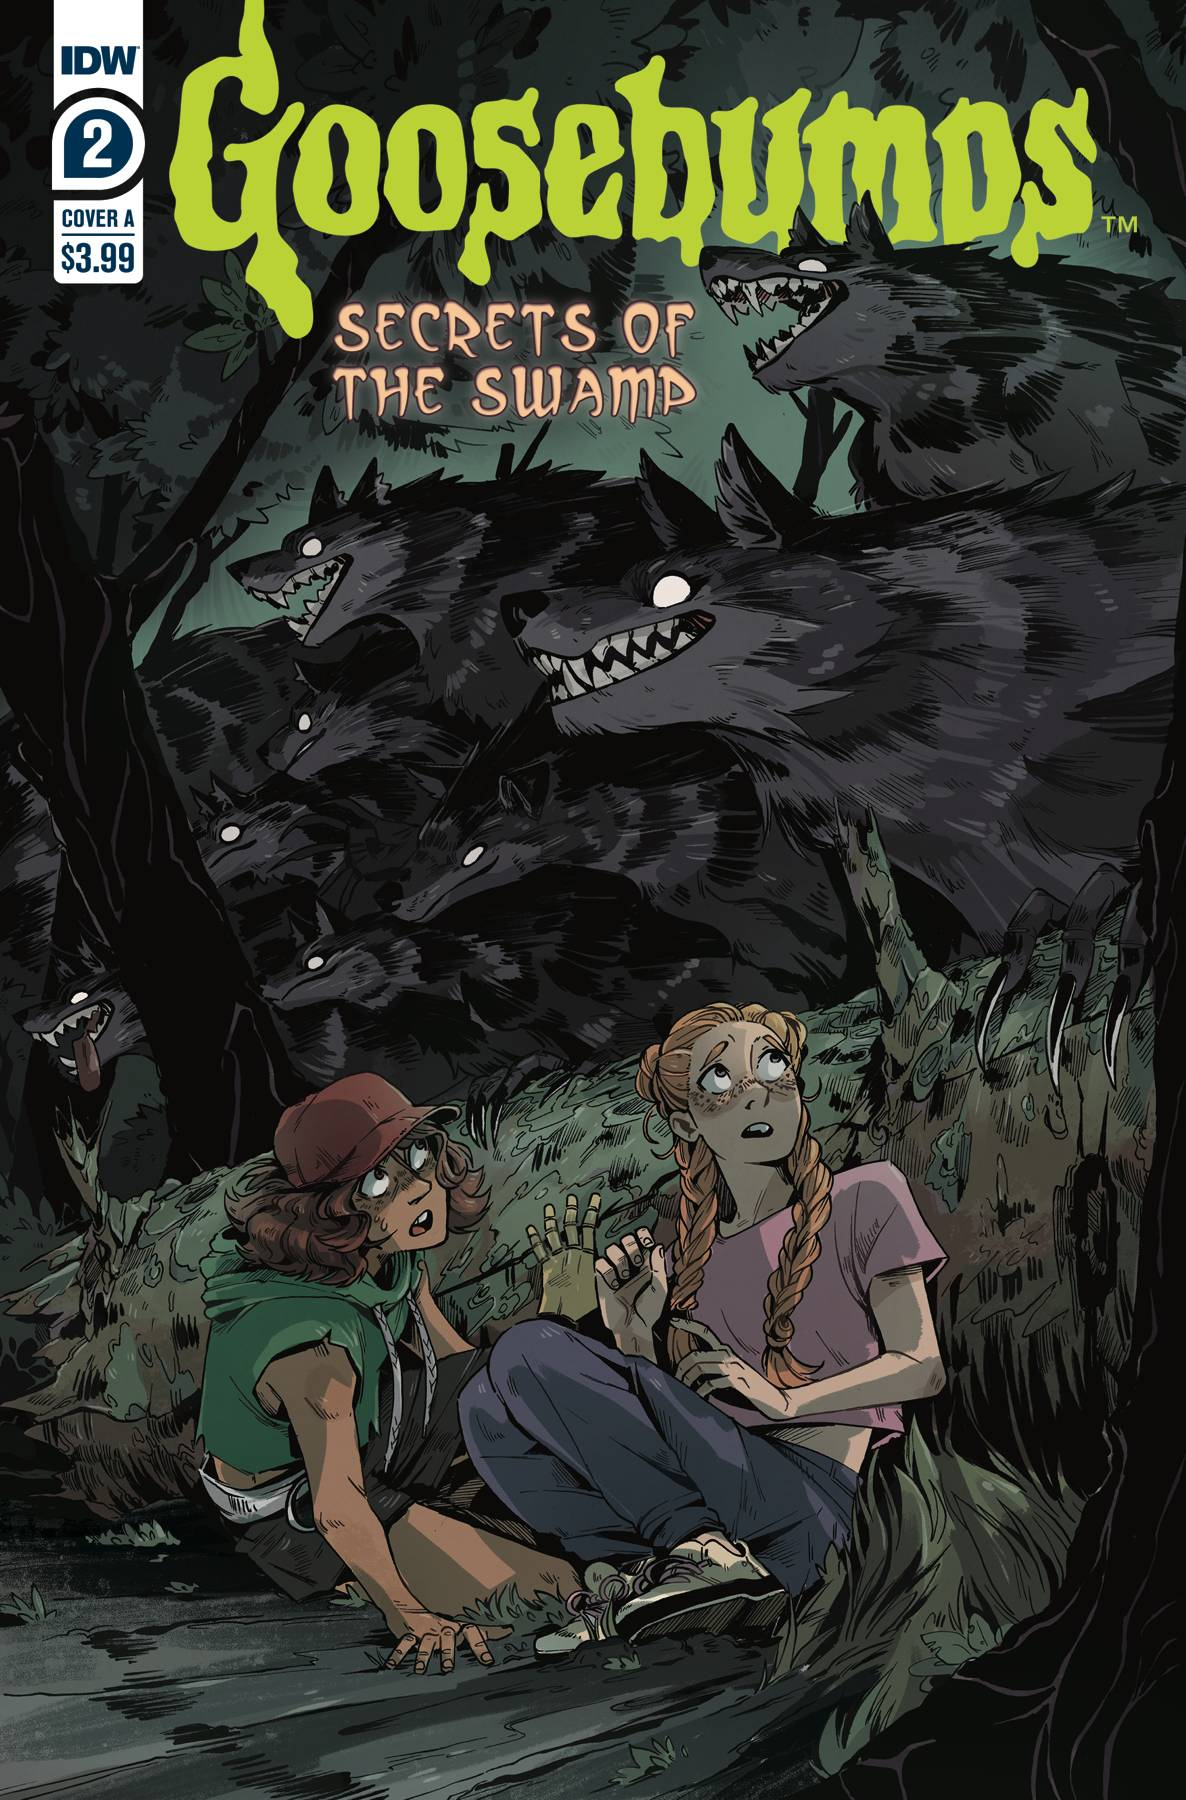 GOOSEBUMPS SECRETS OF THE SWAMP